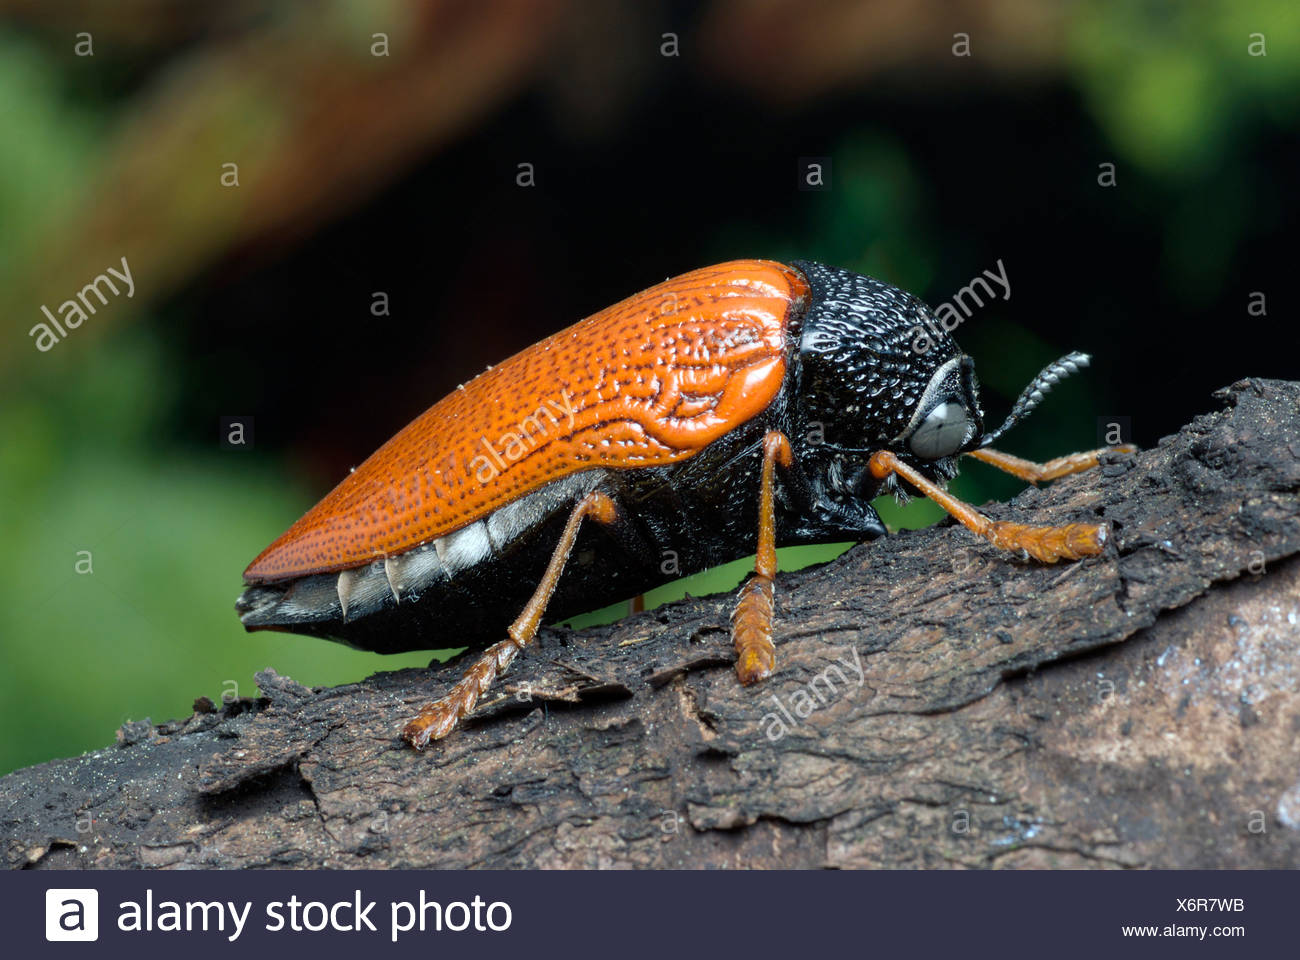 jewel beetle (Sternocera hildebrandti), on bark - Stock Image